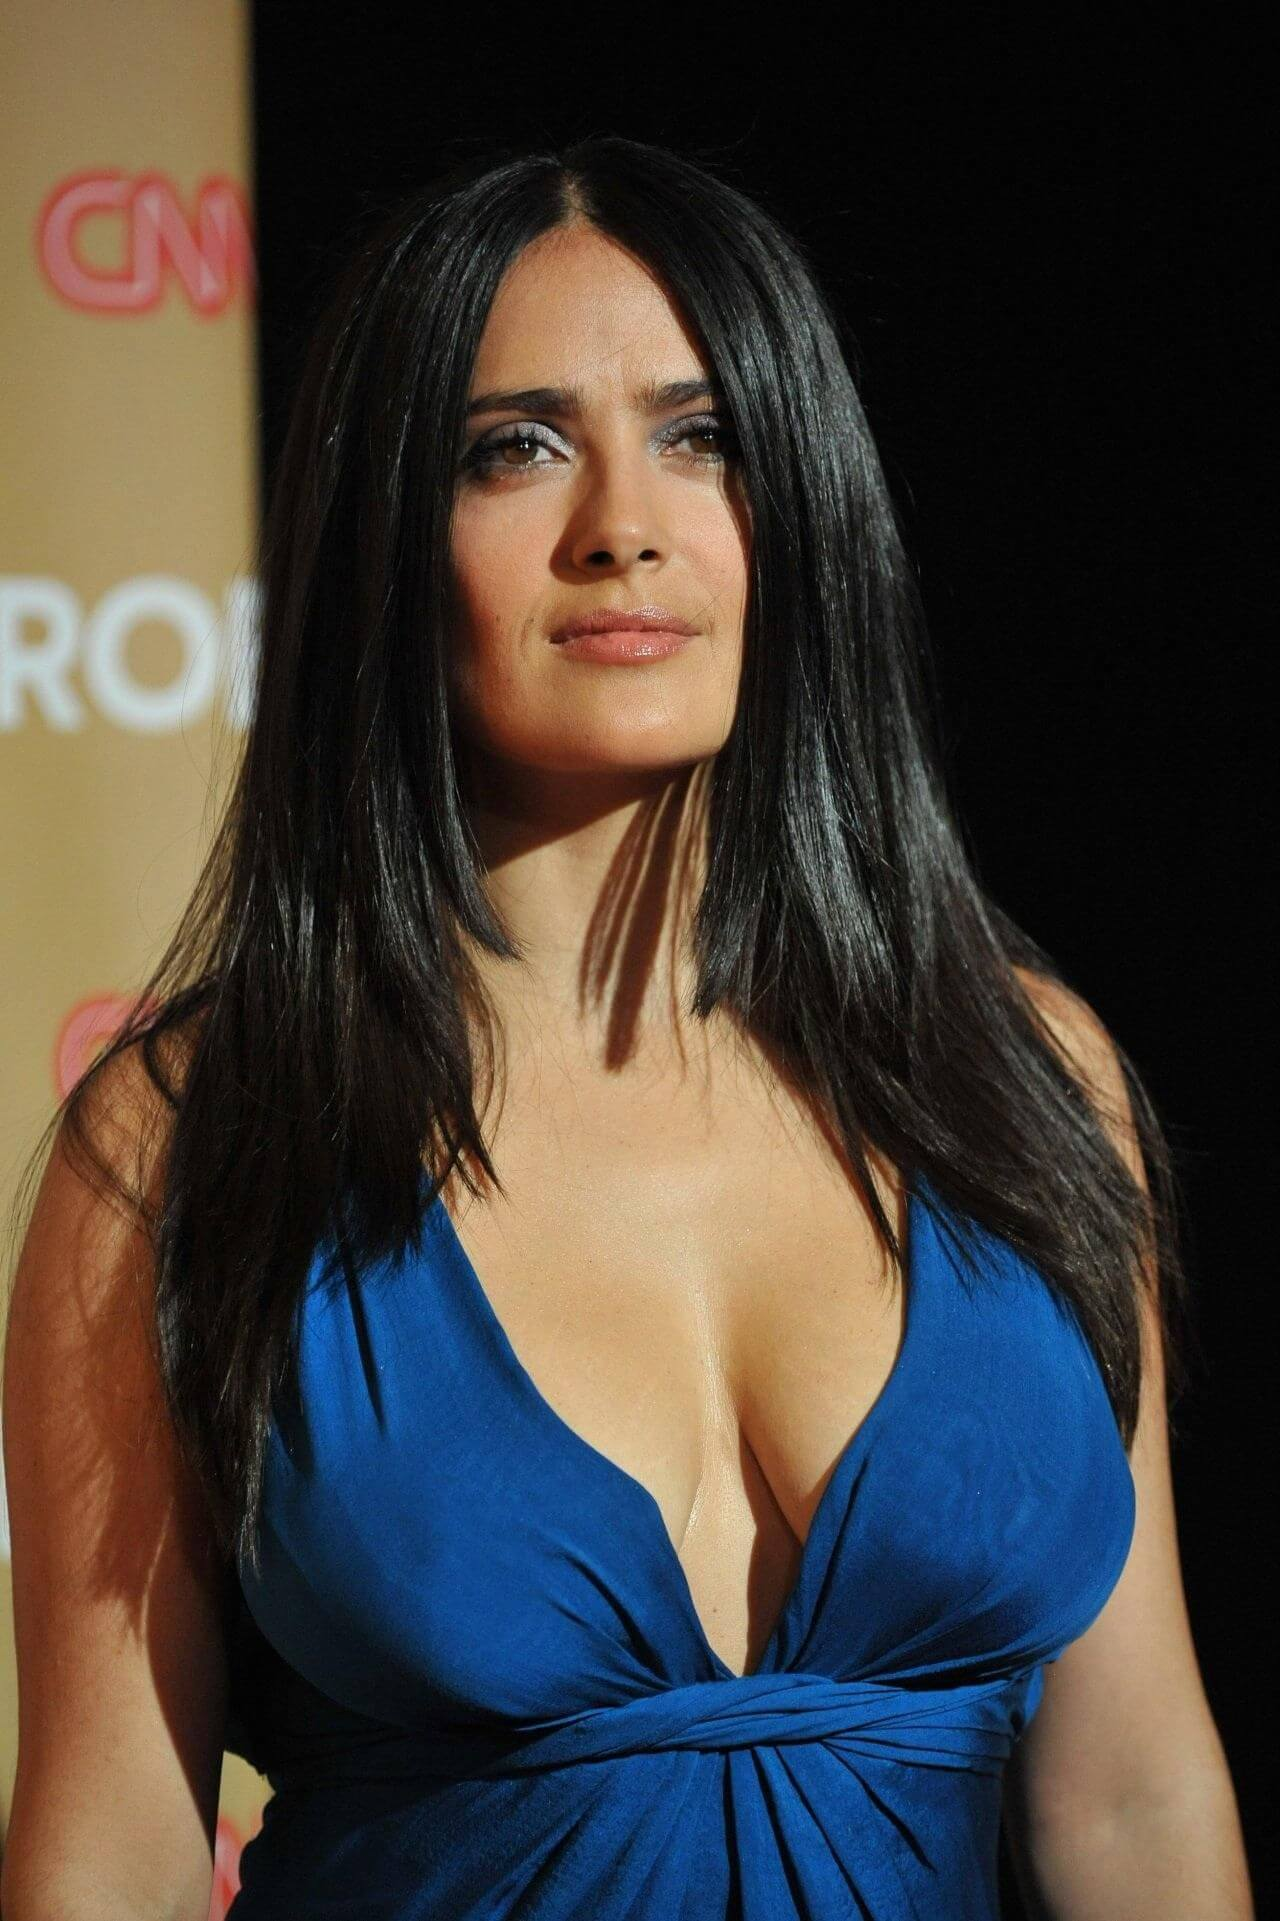 salma hayek cleavage pictures